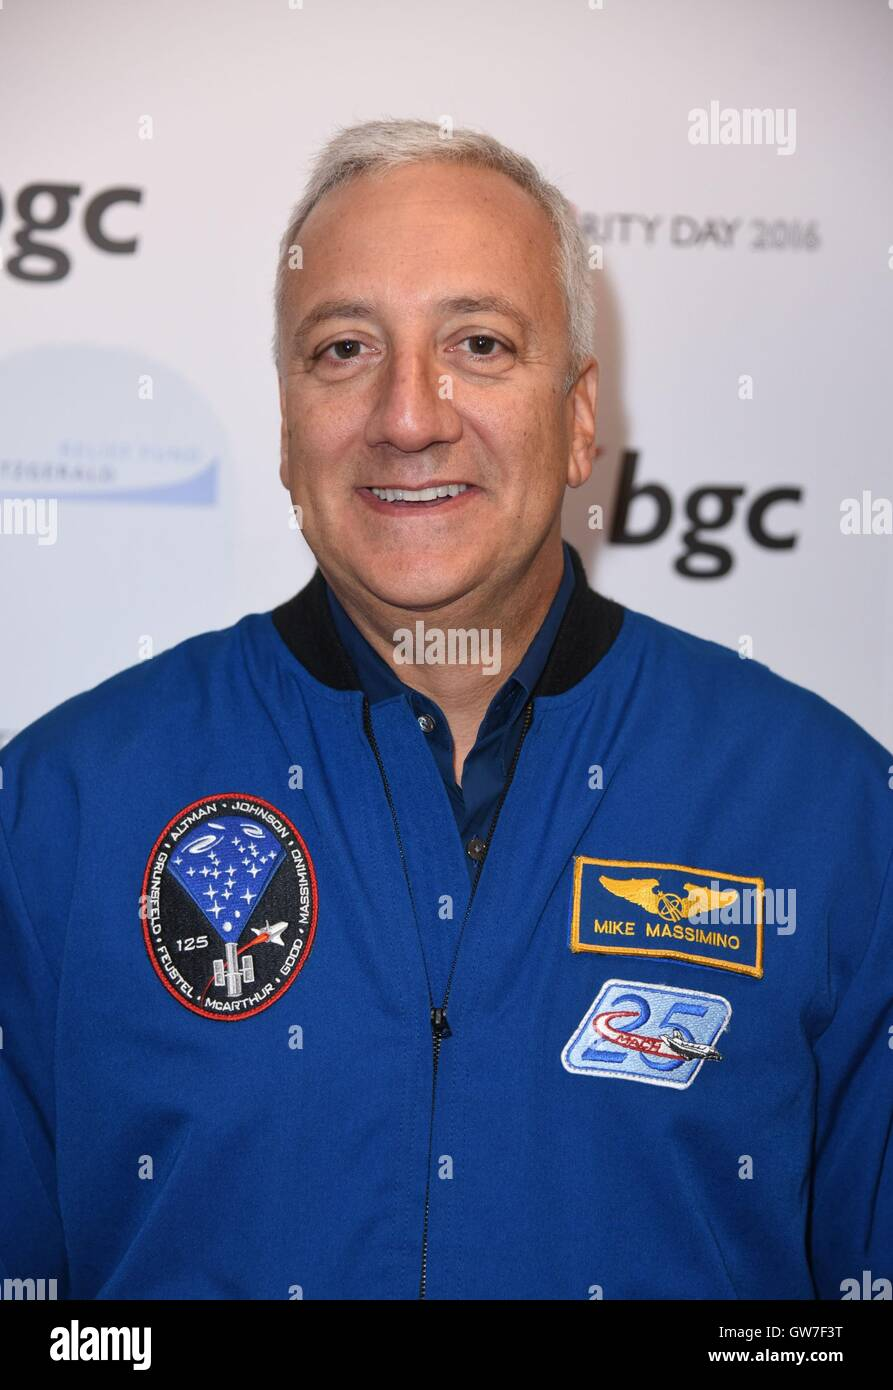 New York, NY, USA. 12th Sep, 2016. Michael Massimino in attendance for BGC Partners Charity Day to Commemorate 9/11, - Stock Image